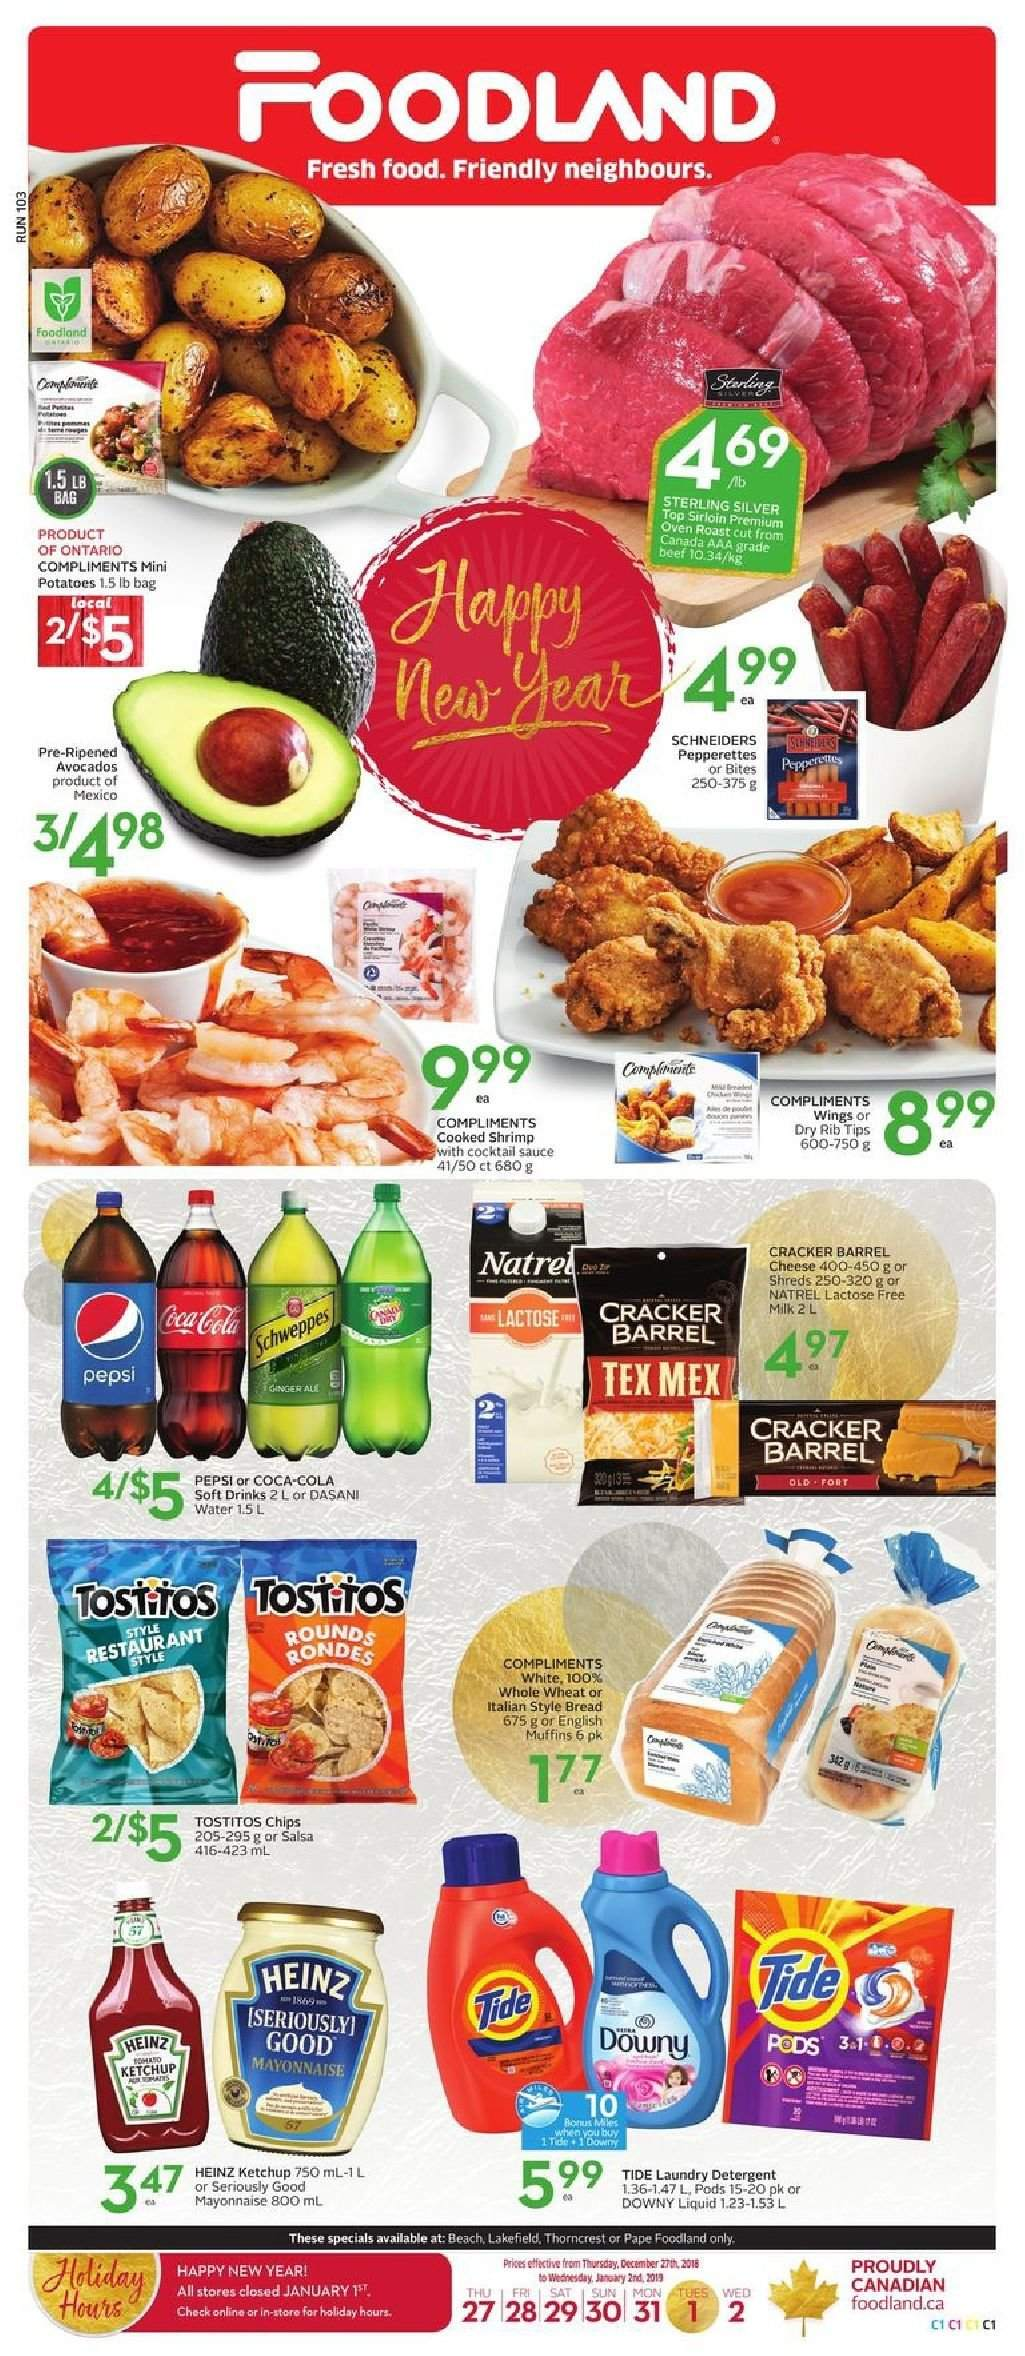 Foodland Flyer  - December 27, 2018 - January 02, 2019. Page 1.